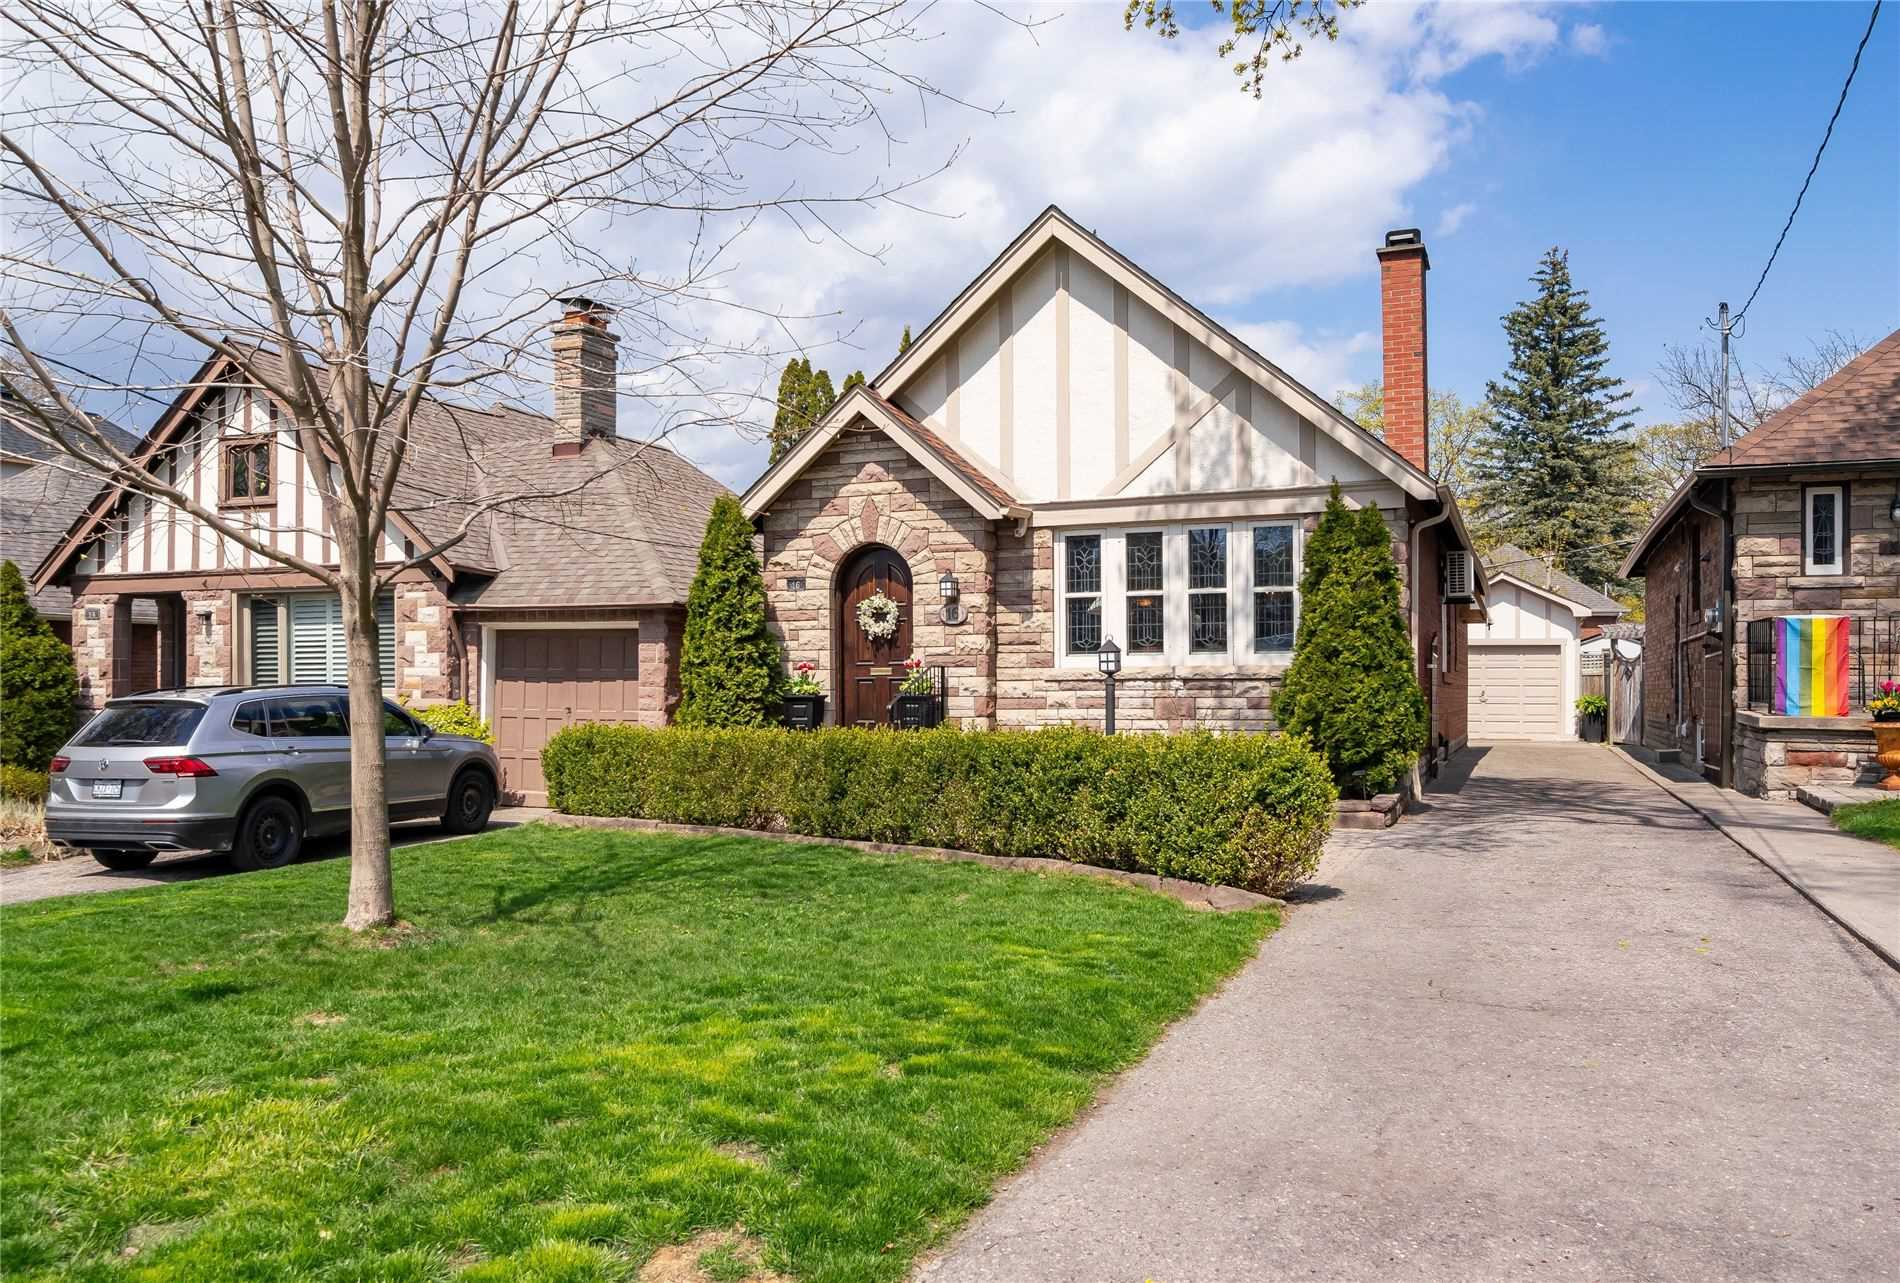 16 Armadale Ave - W5202785- $1,625,000